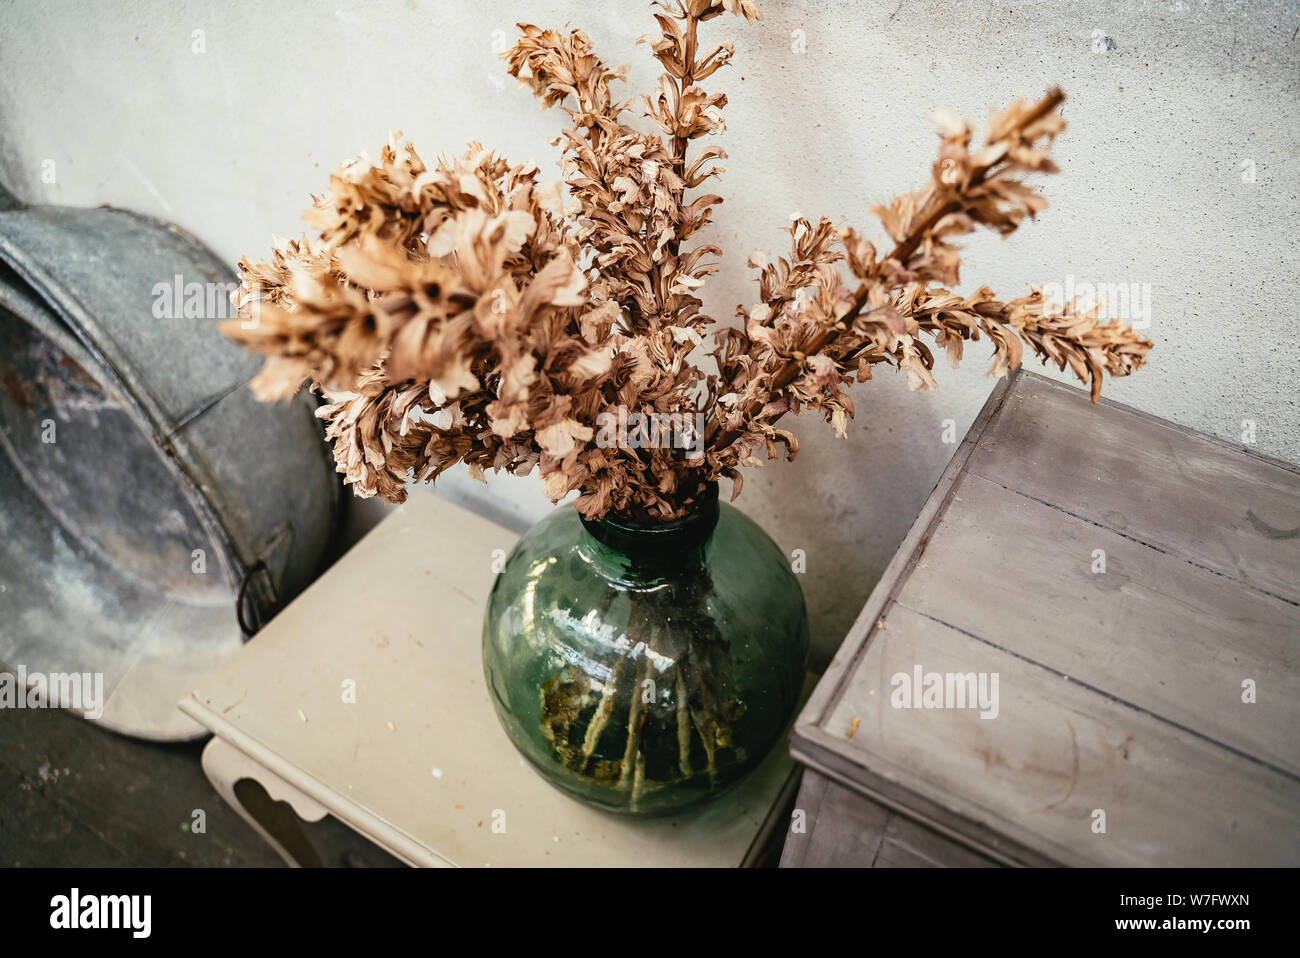 Green Glass Vase With Dried Flower Arrangement Stock Photo Alamy